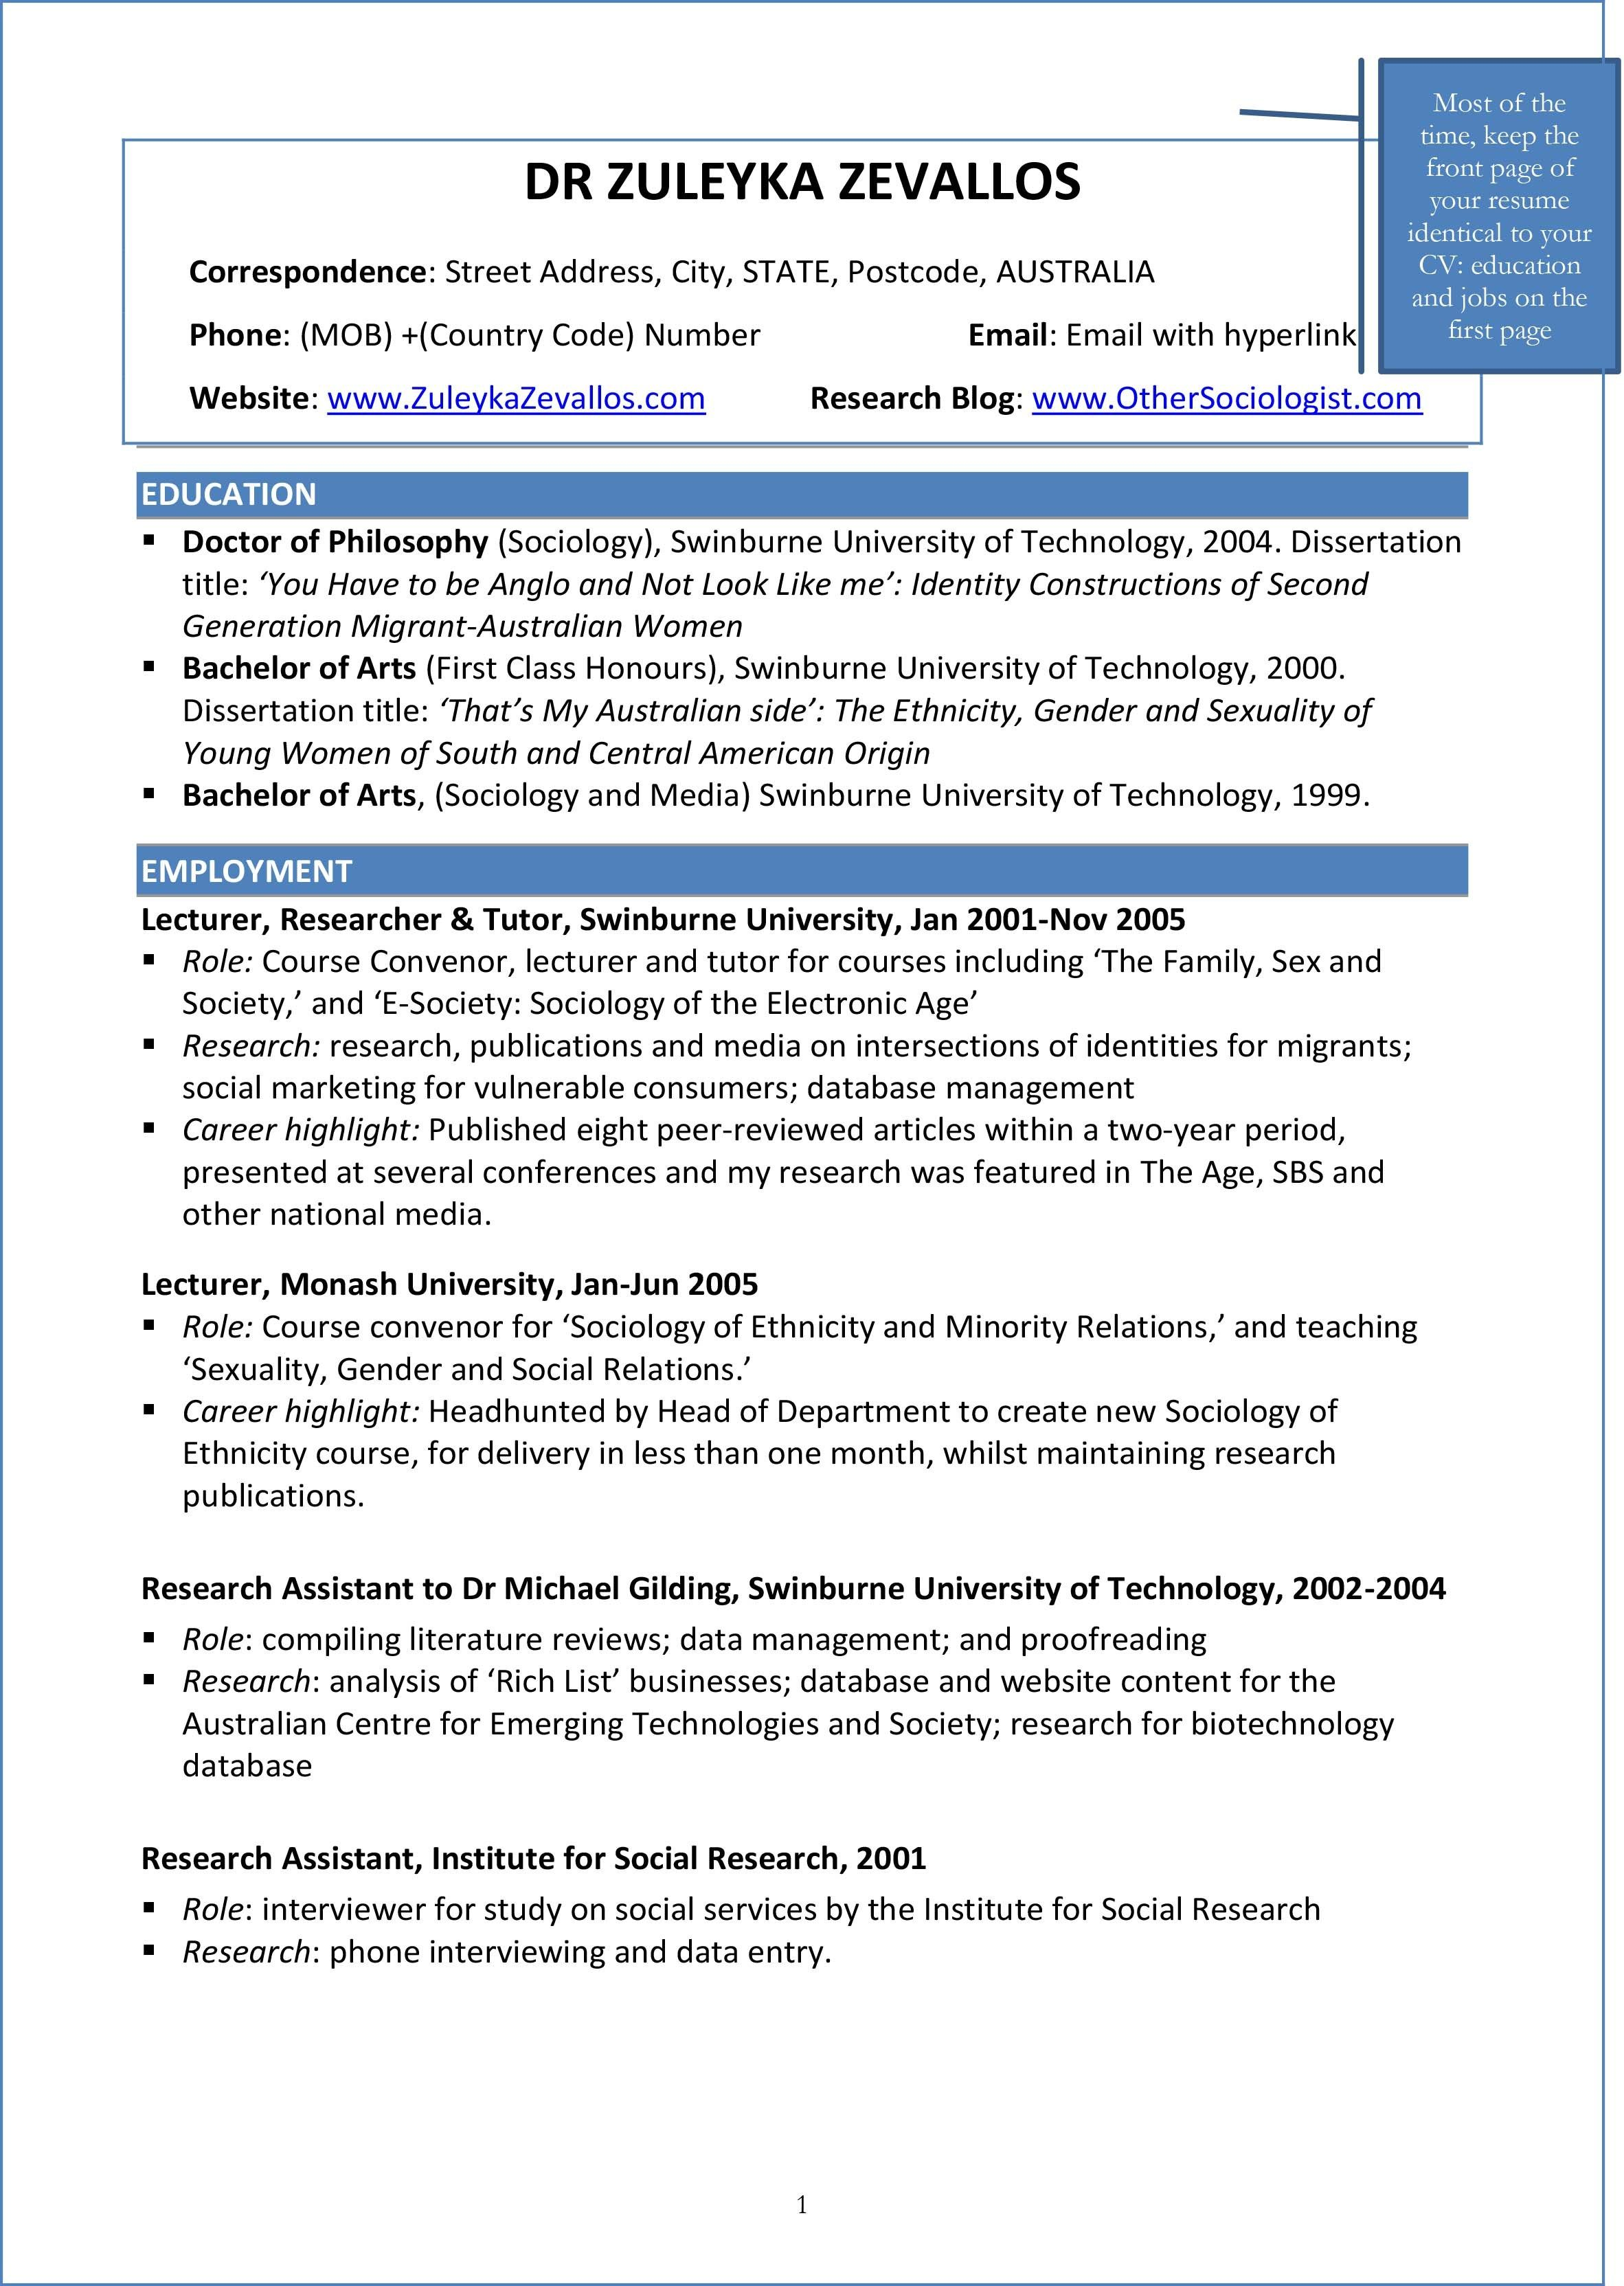 Creating A Cv And Resume For Applied Sociology Jobs Sociology At Work Create A Cv Resume Examples Resume